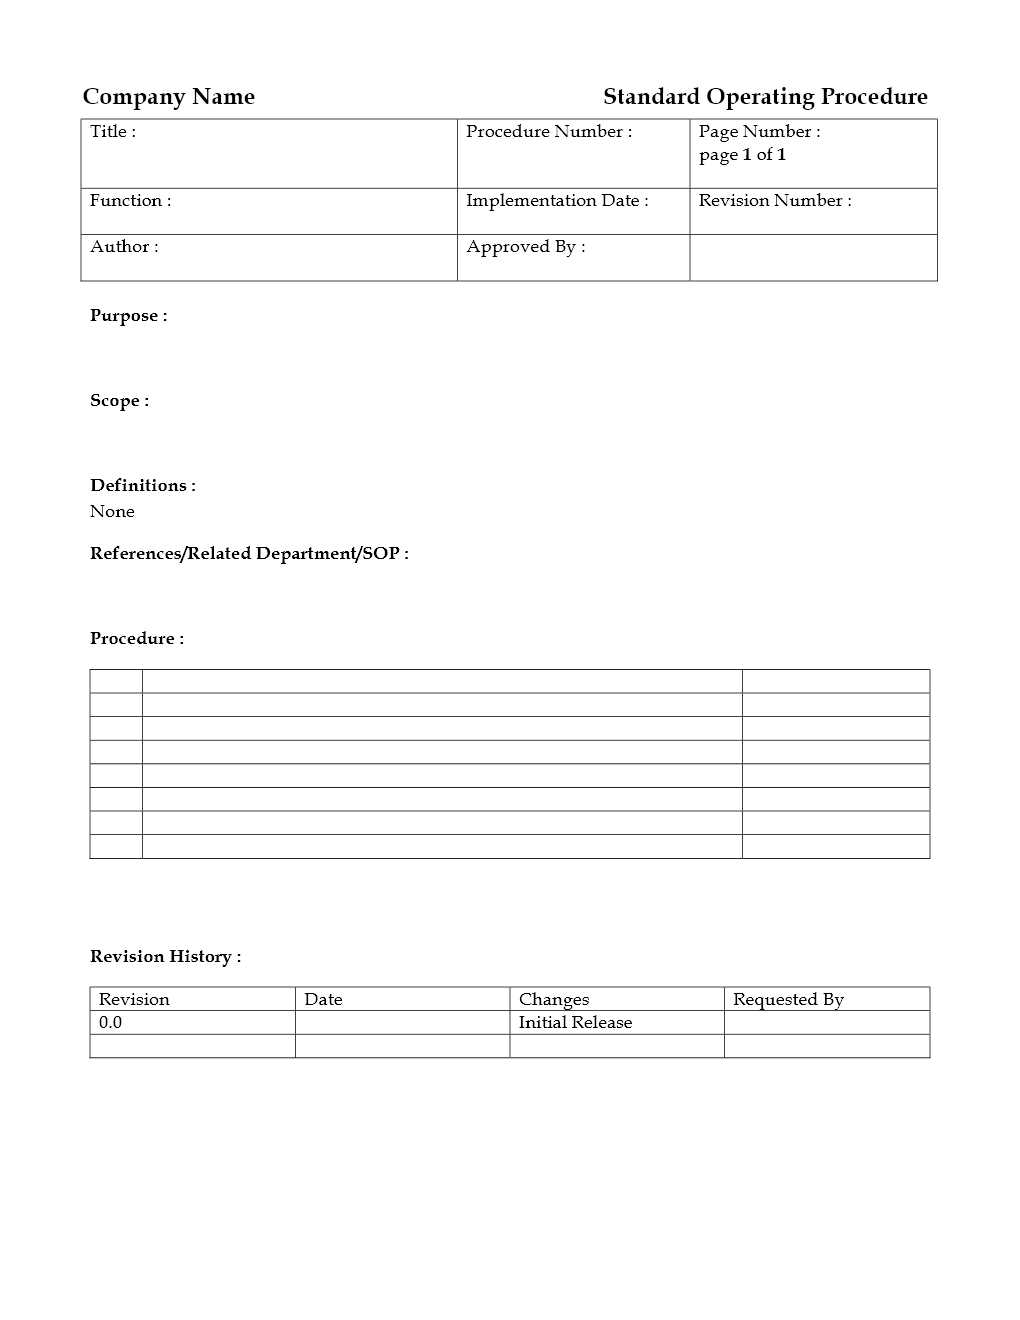 Standard operating procedure for Standard operating guidelines template